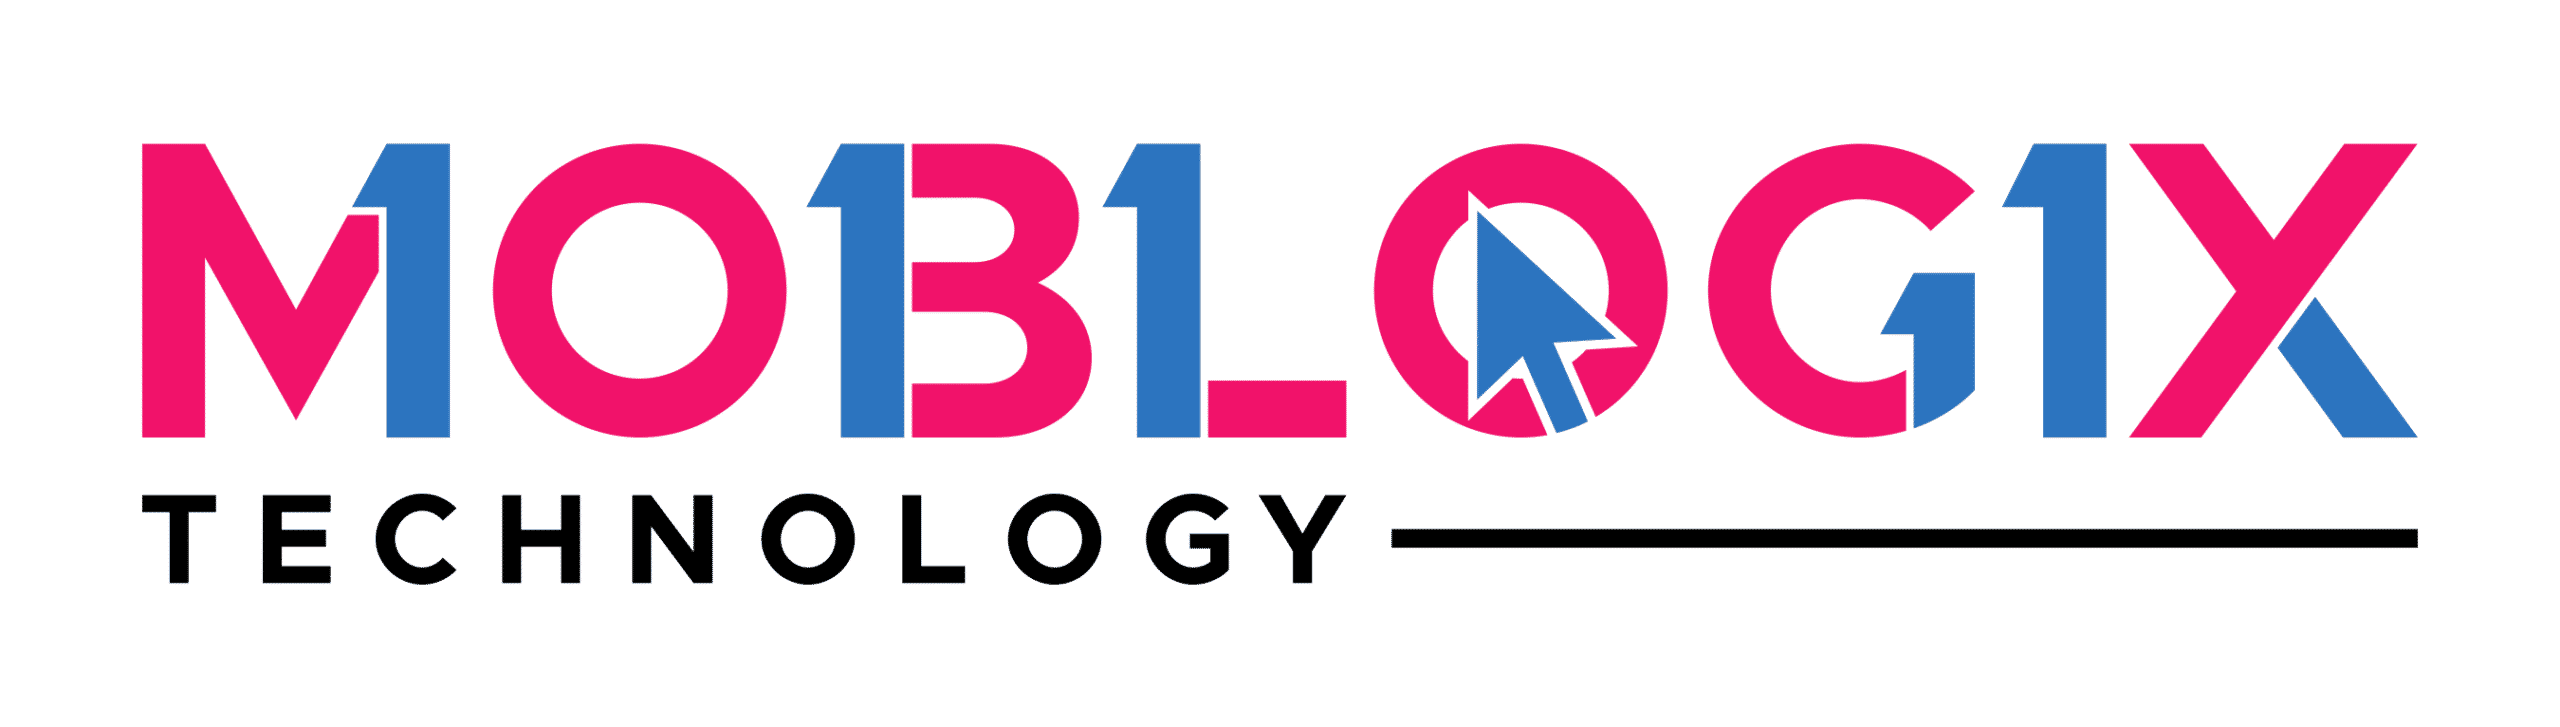 Moblogix Technology | Web Developer in Jodhpur | Web Designer in Jodhpur | Website developer in Jodhpur | Web Developer in Rajasthan